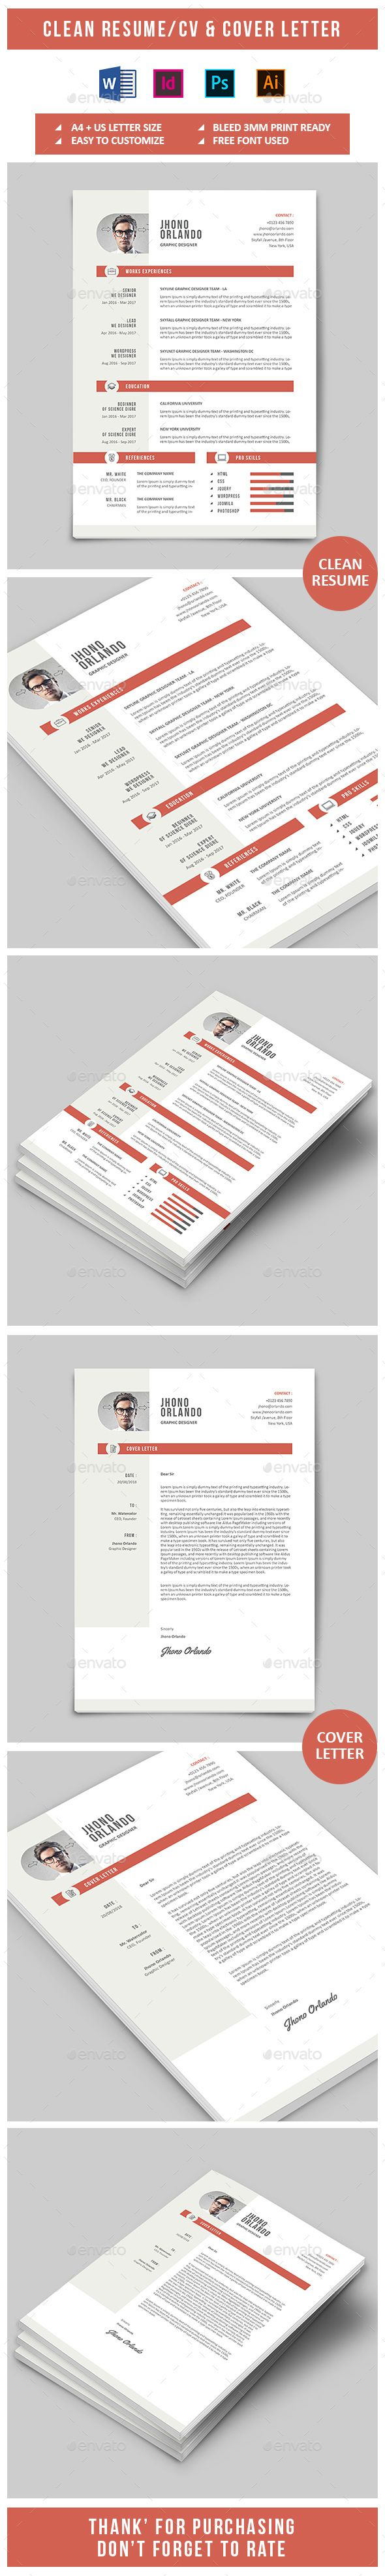 Clean Resume & Cover Letter Template InDesign INDD, MS Word, PSD - A4 International & US Letter Size